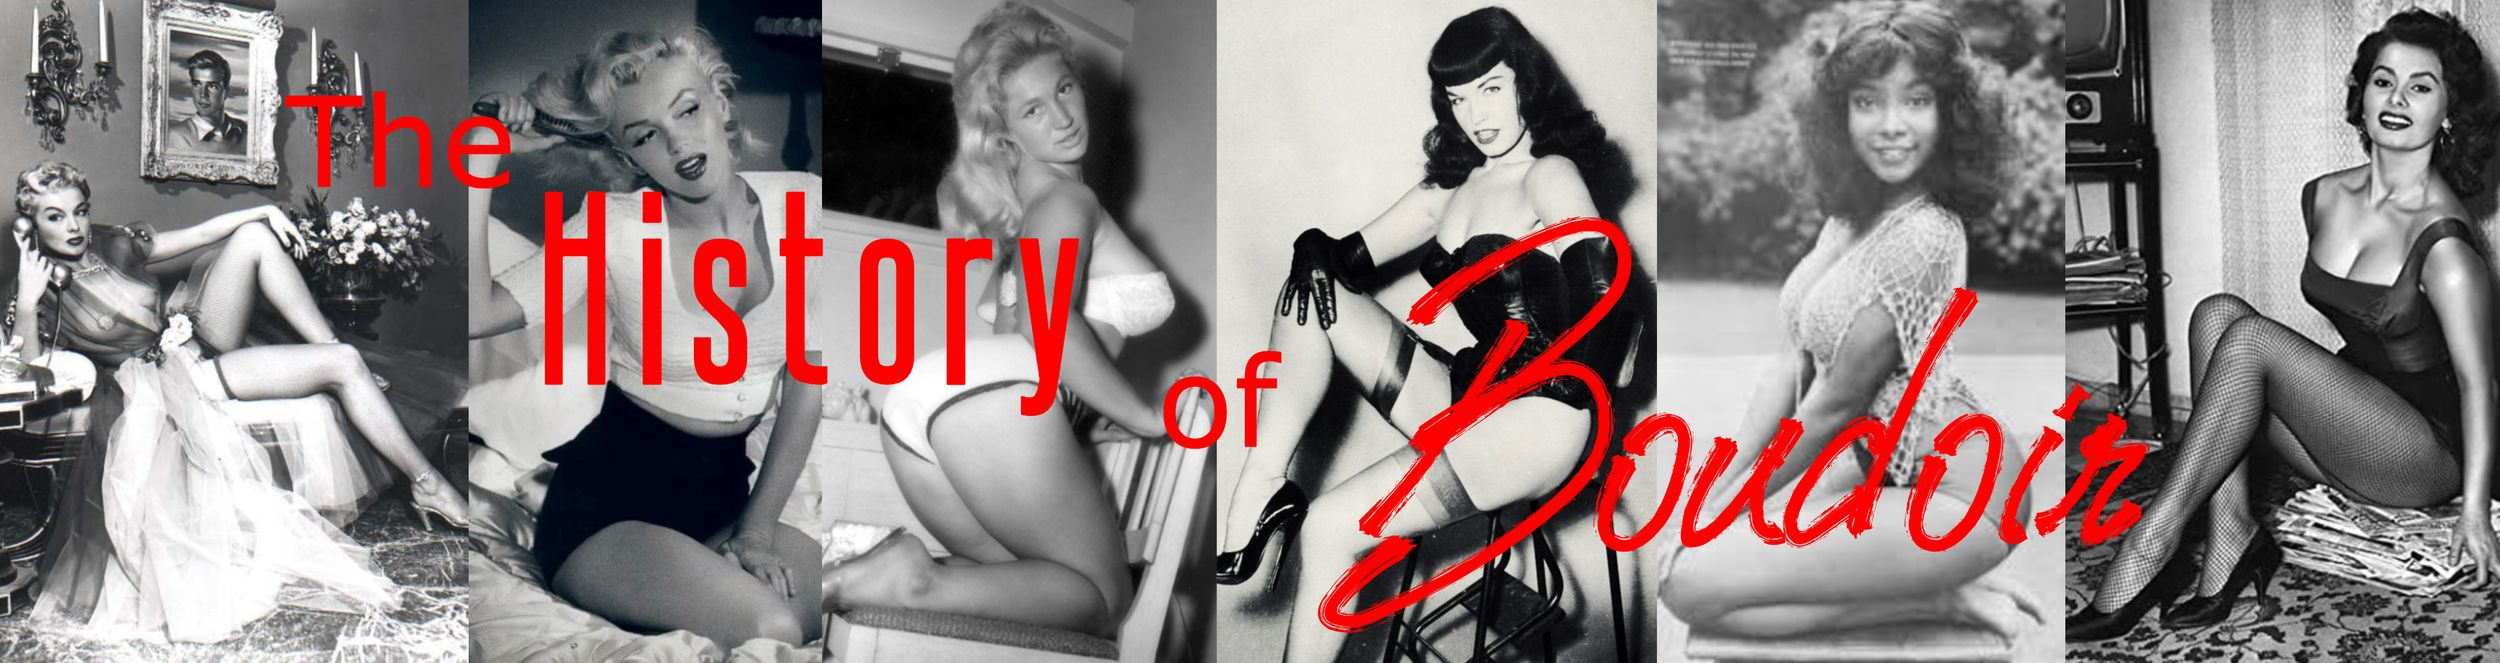 BANNER OF VINTAGE BOUDOIR BABES SHOWING THE HISTORY OF BOUDOIR PHOTOGRAPHY